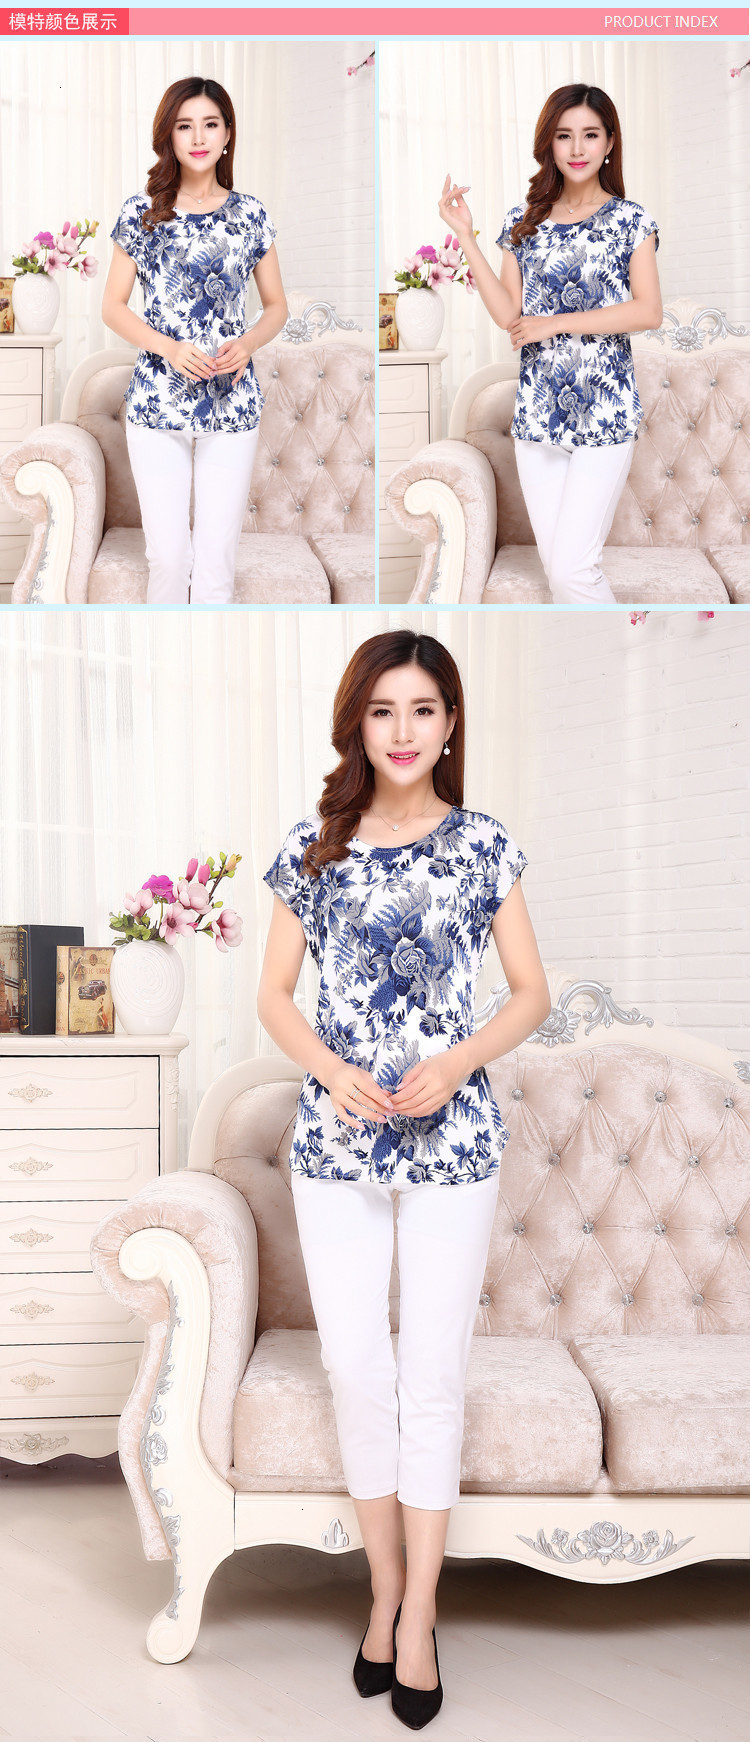 Hf4e15c820c2946a9953cd45f0630b415Y - 5XL Women Ladies Clothing Tops short Sleeve printing Shirts Casual Boat anchor Blouse Silk female woman clothes plus size